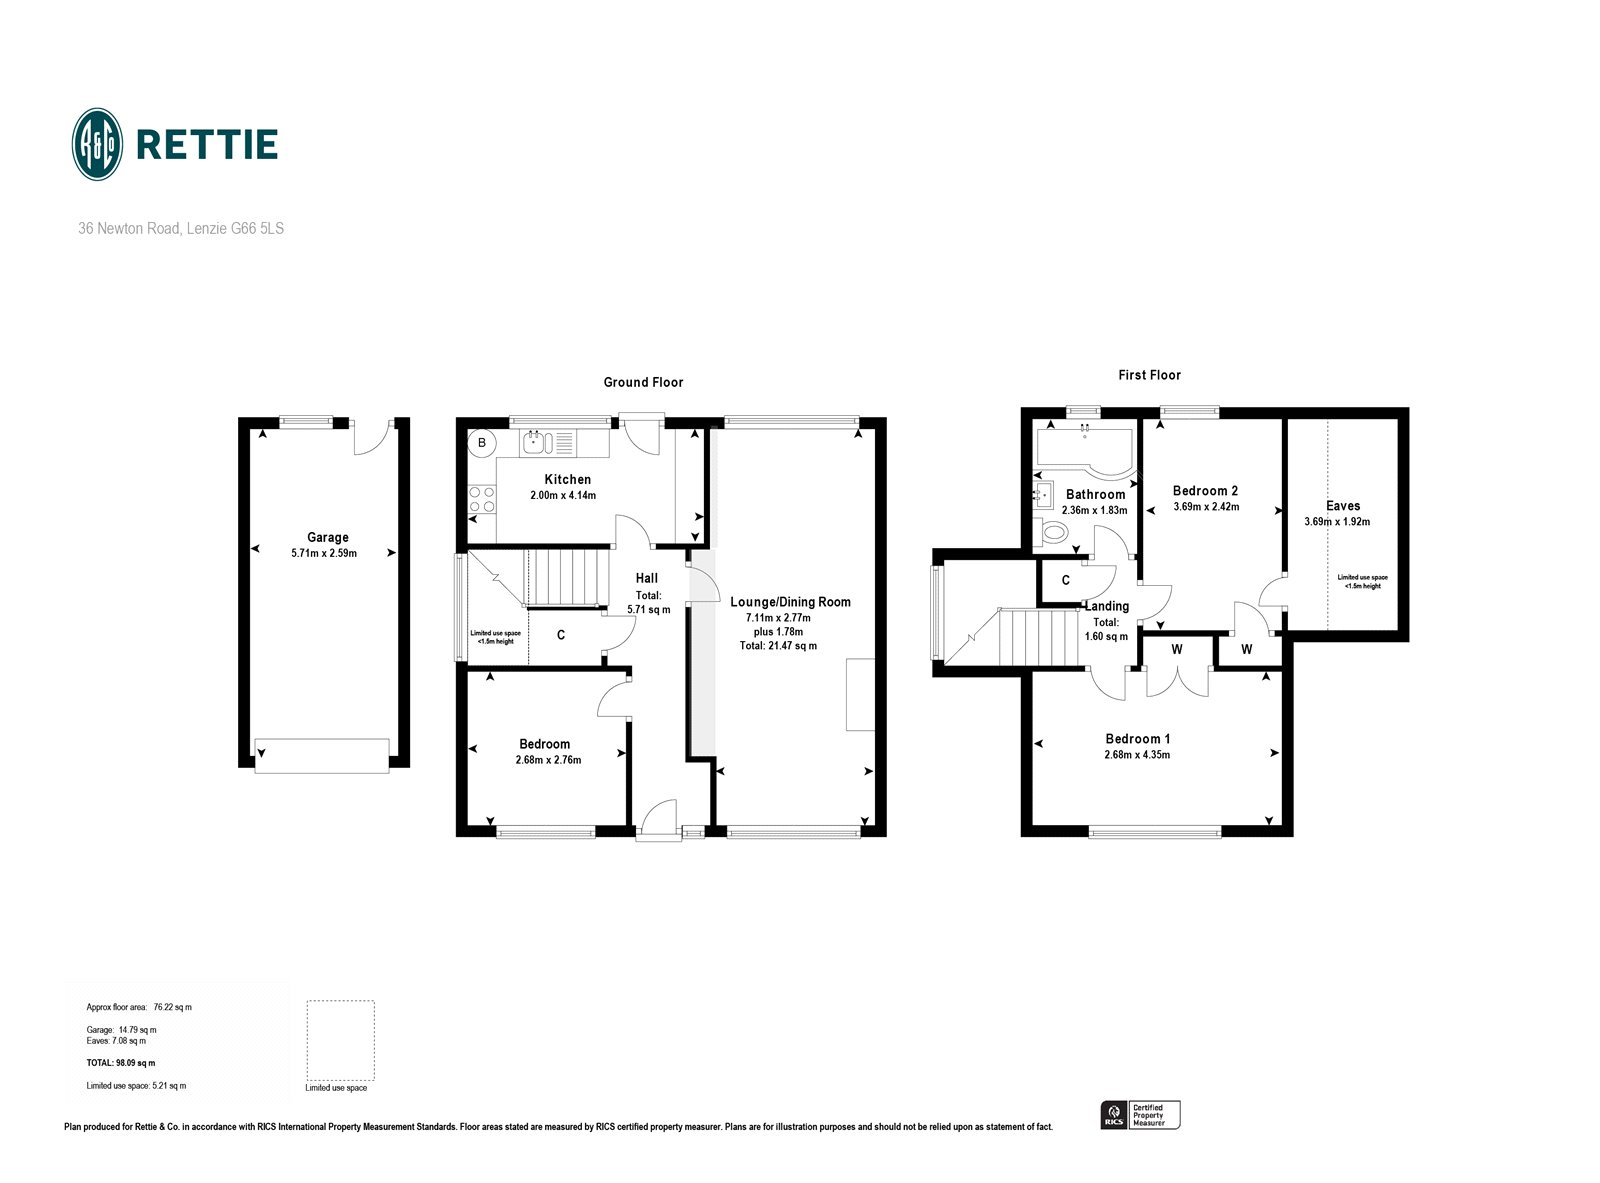 Floorplans for Newton Road, Lenzie, G66